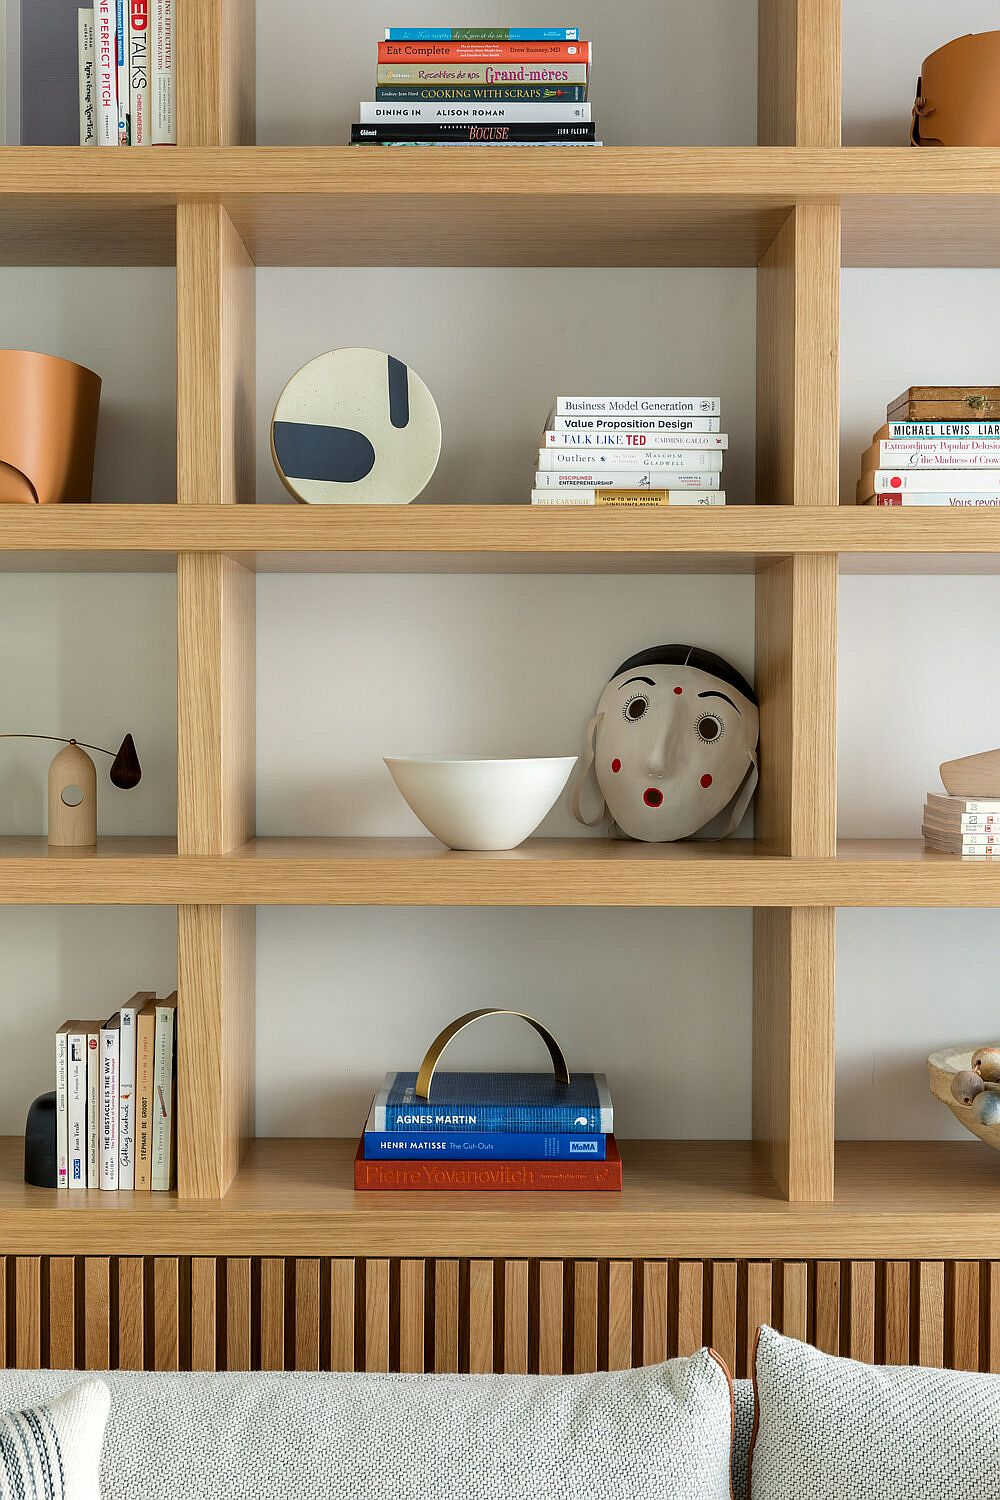 Decorate that open wooden bookshelf in a smart and modern fashion